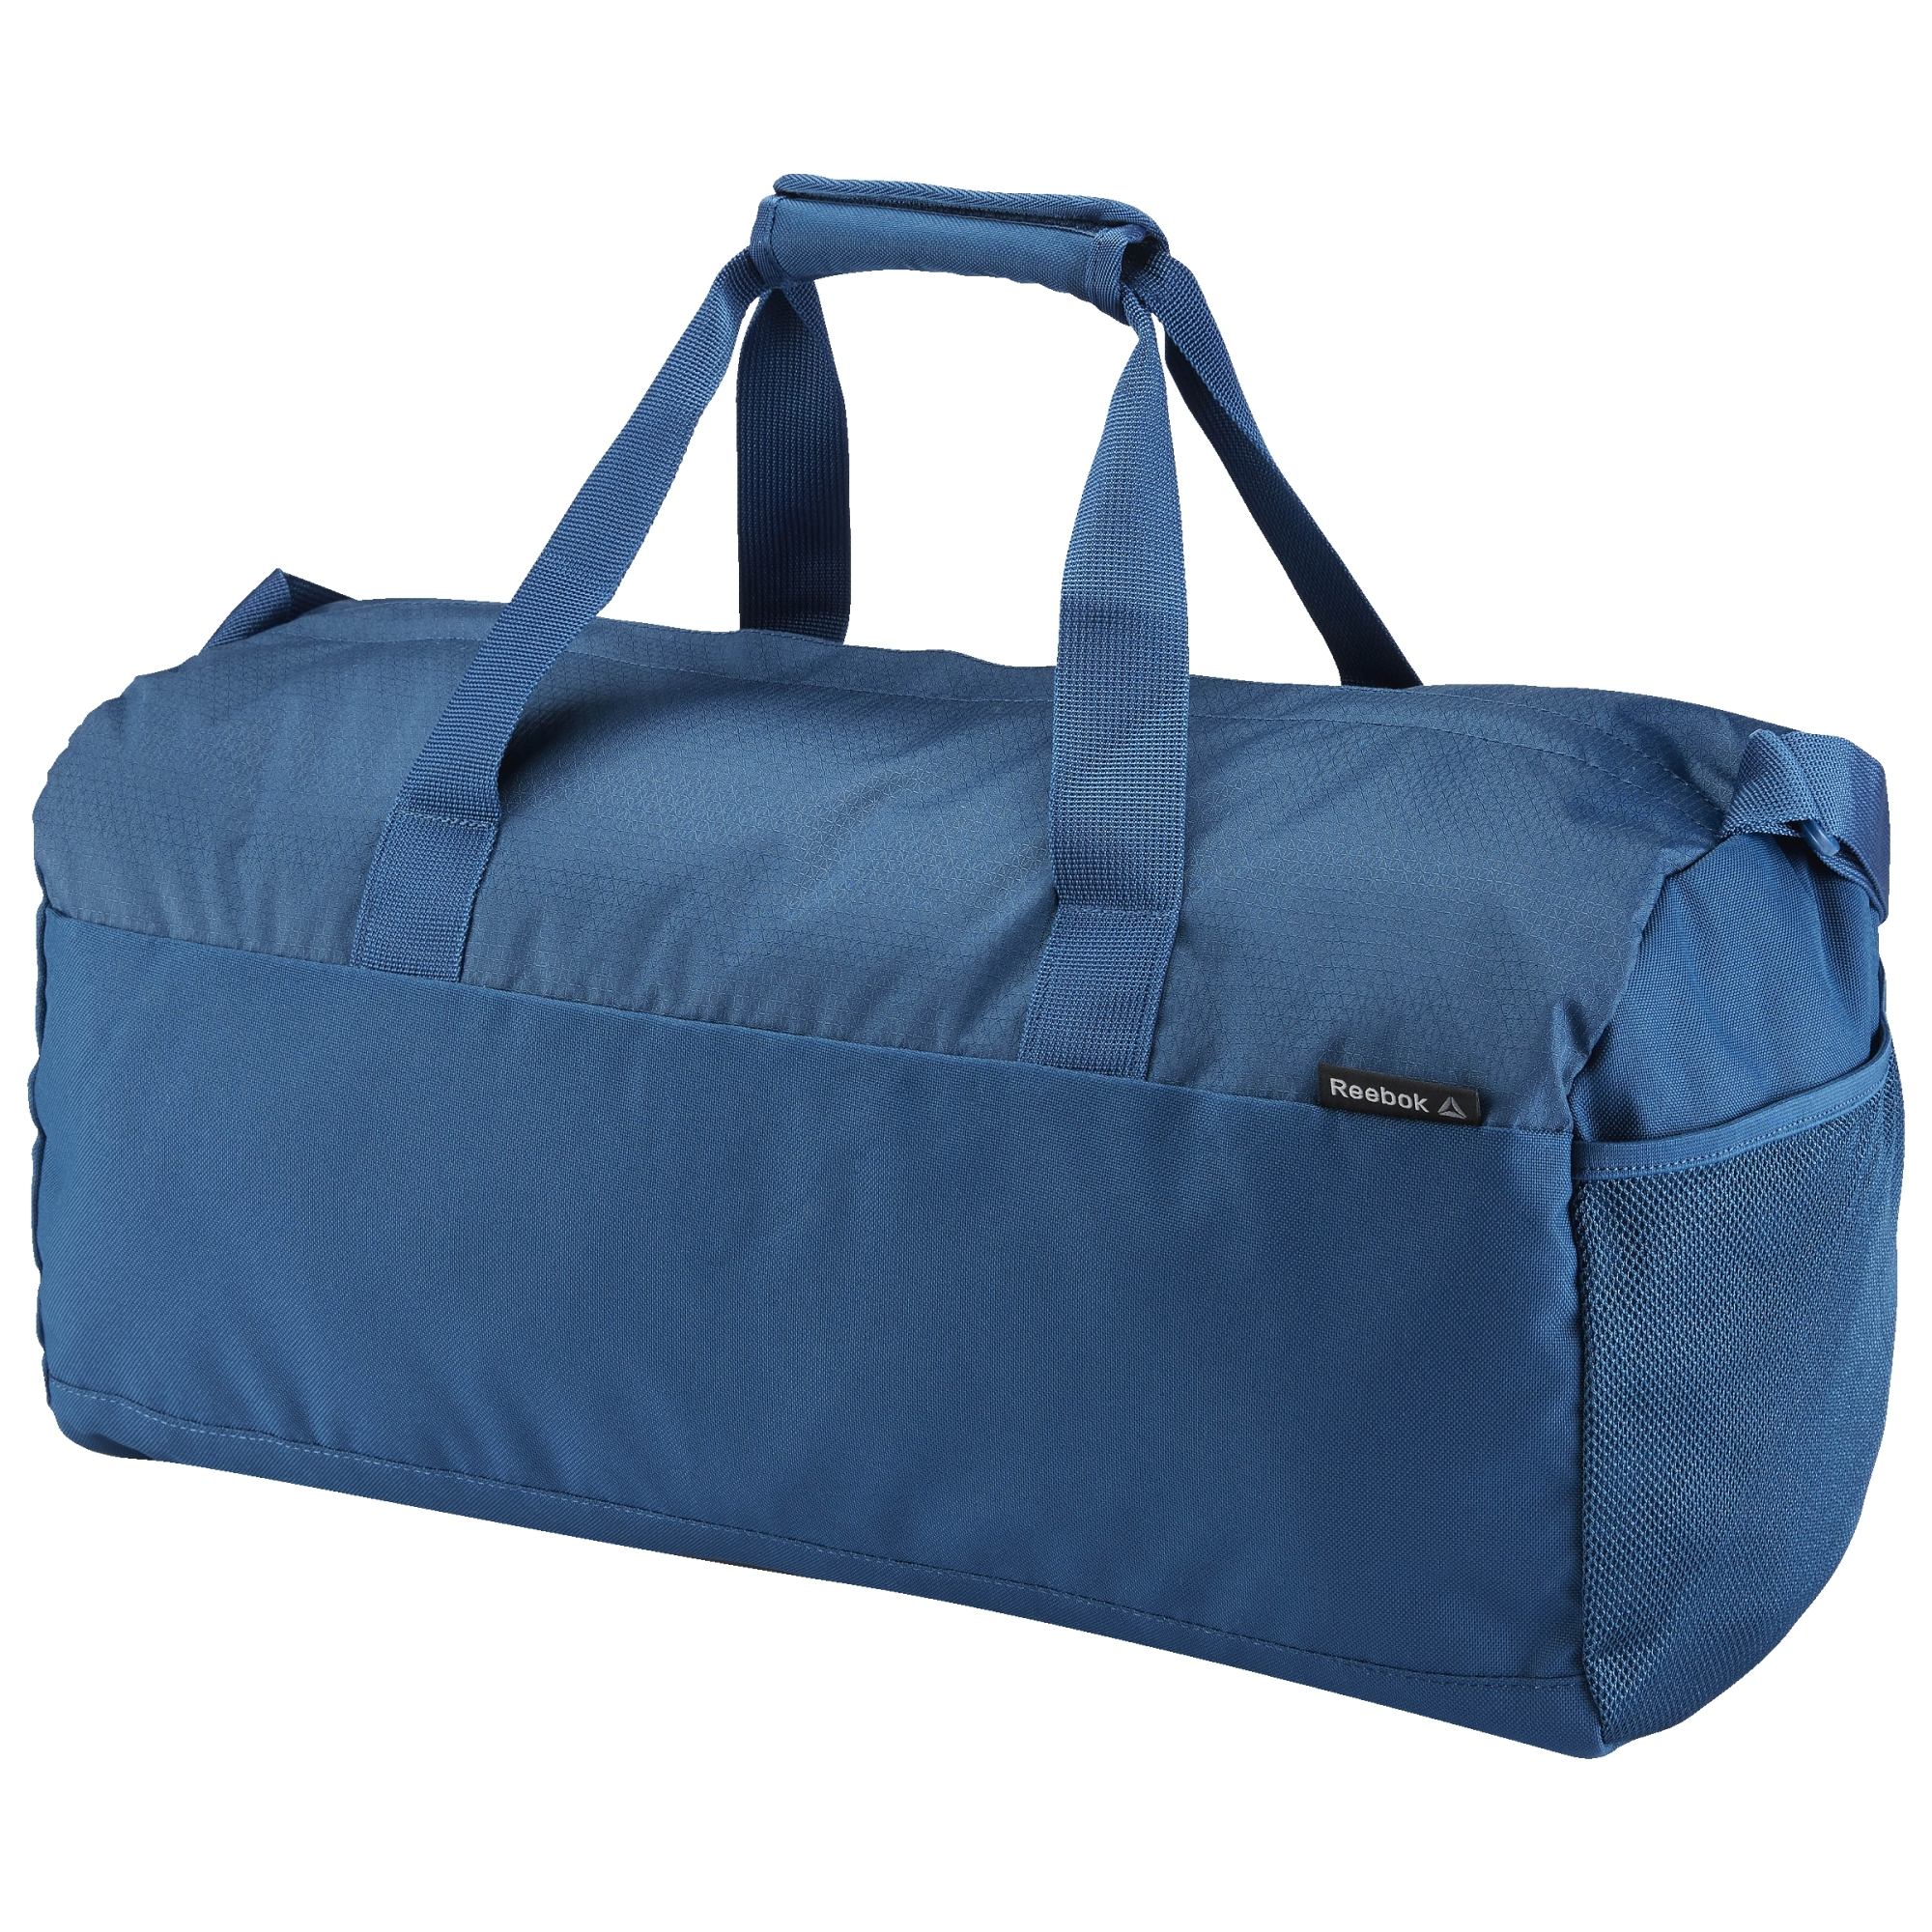 196788feece54 Reebok Sport Essentials Medium Grip Bag (noble blue)